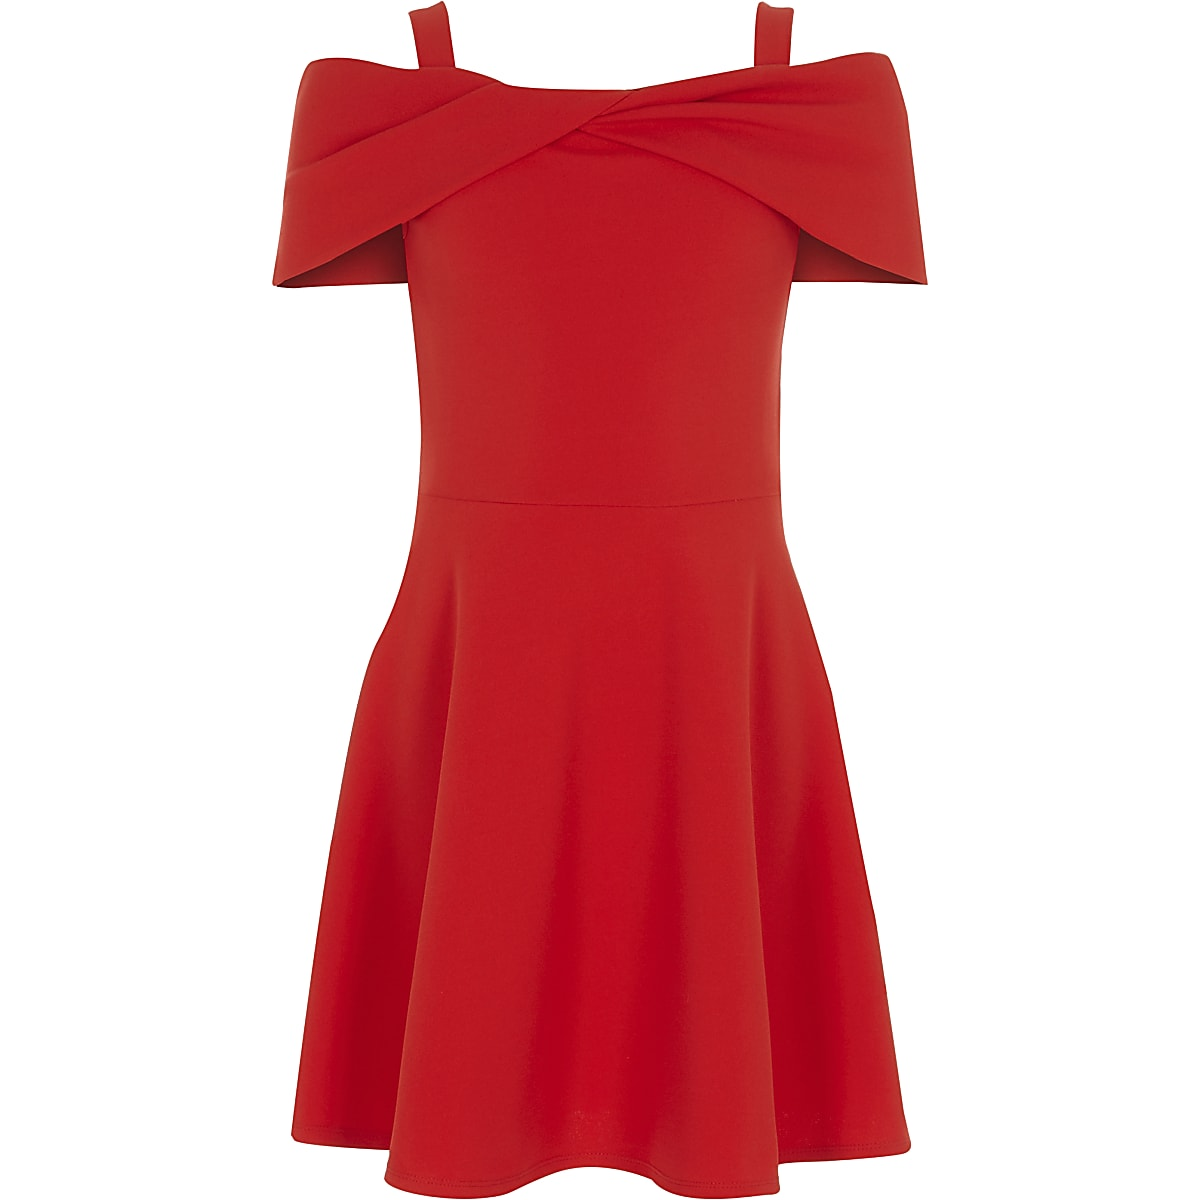 e9a97cff130 Girls red scuba bow bardot skater dress - Party Dresses - Dresses - girls